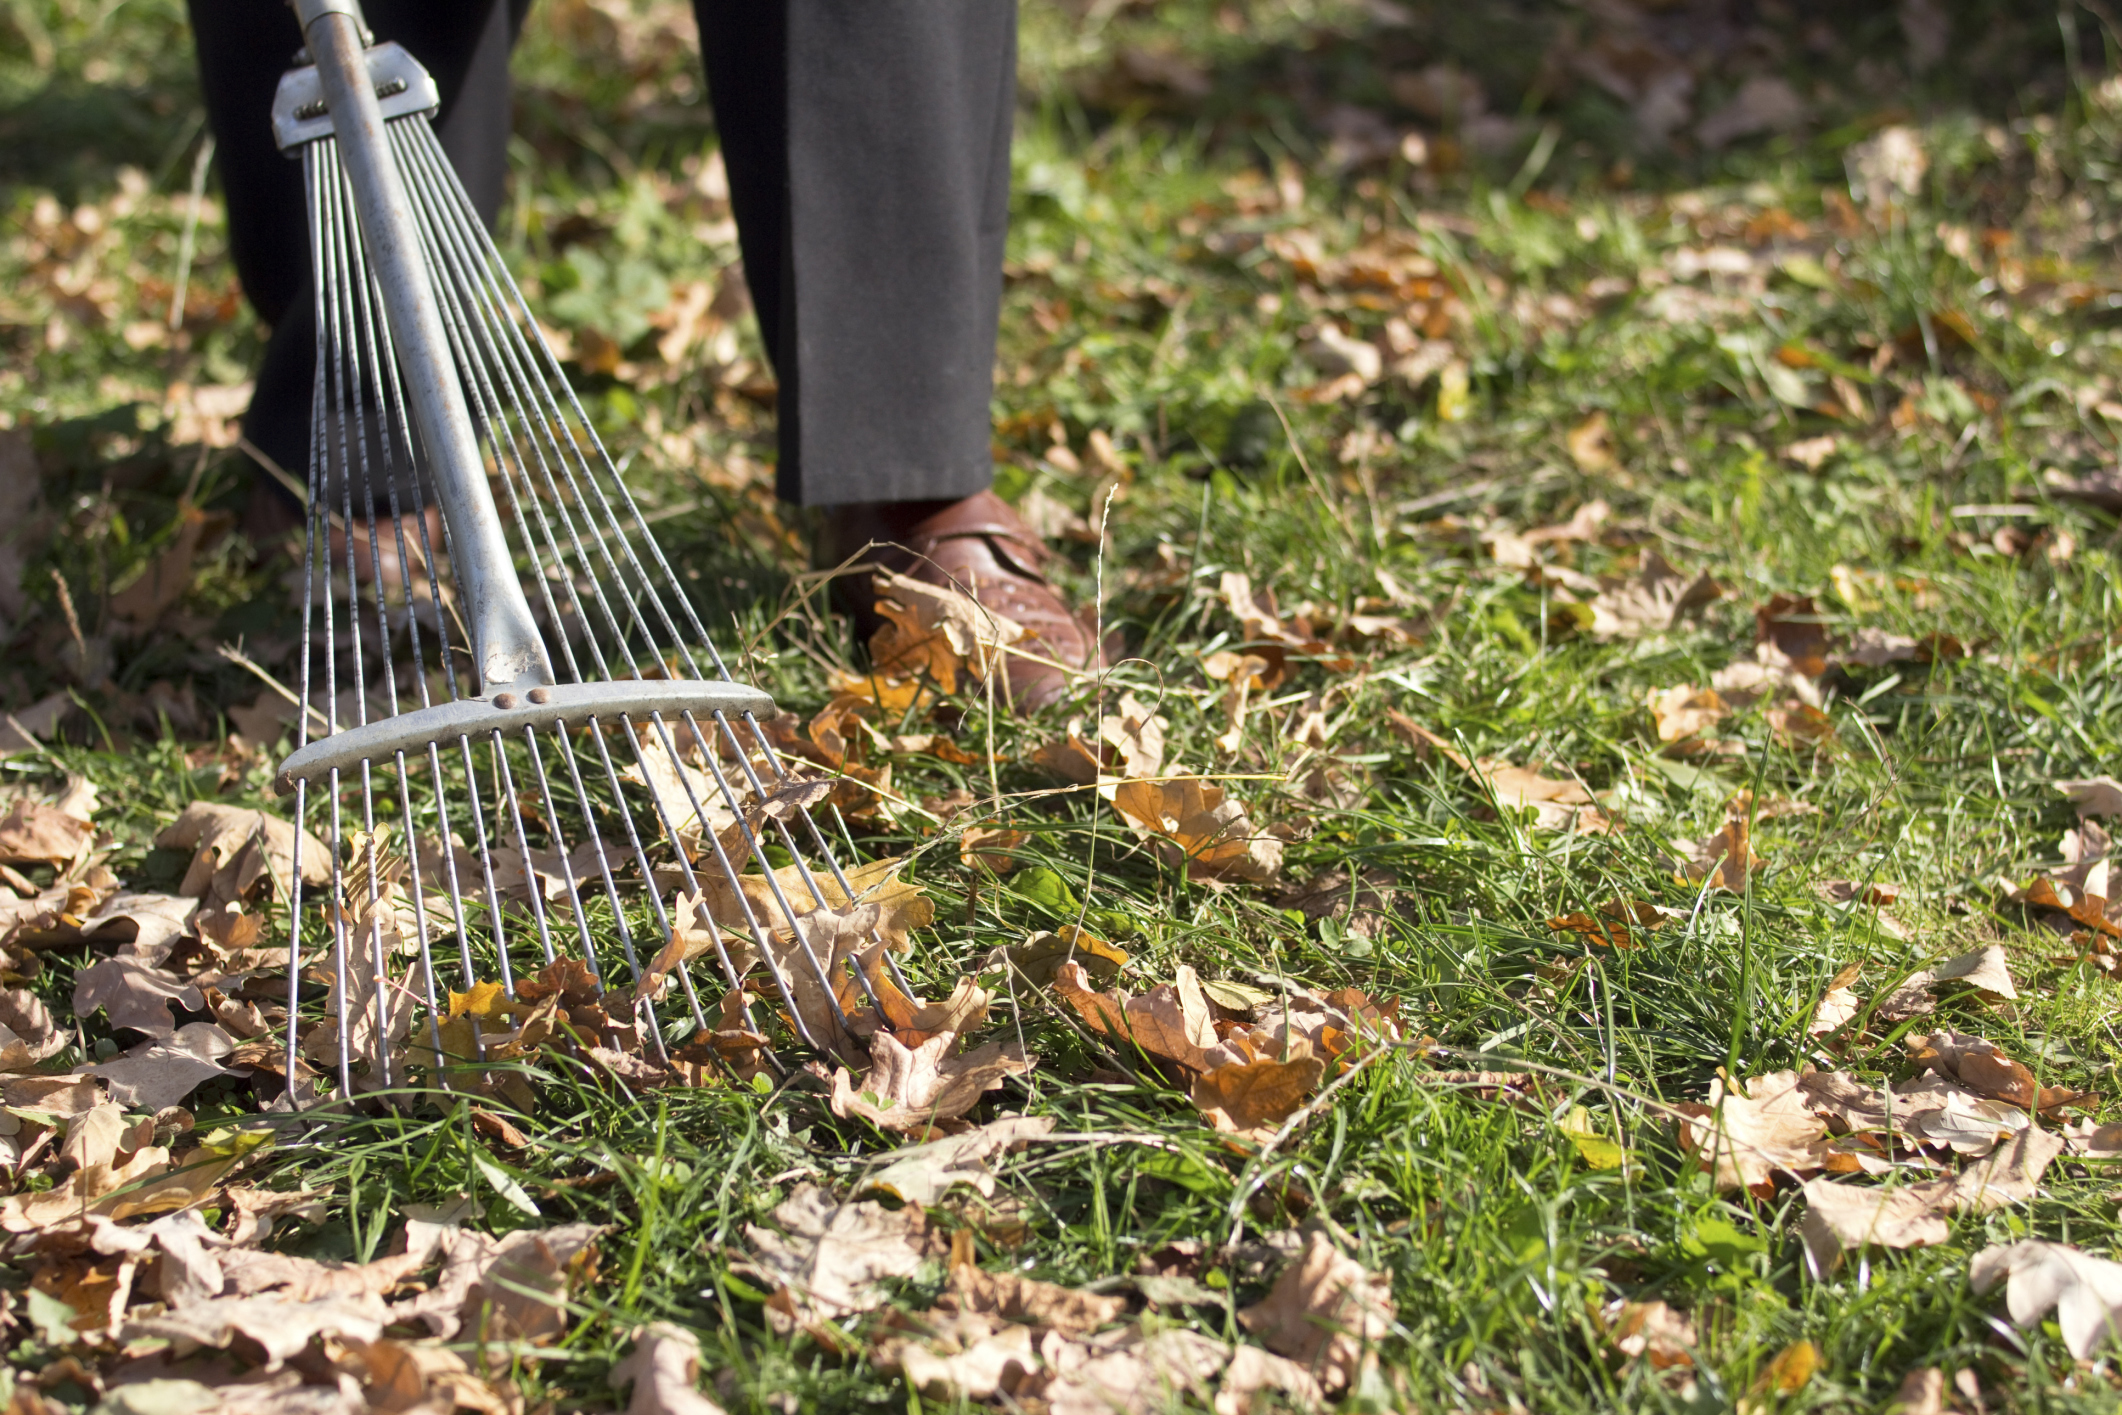 Raking safety tips from the Farmers' Almanac